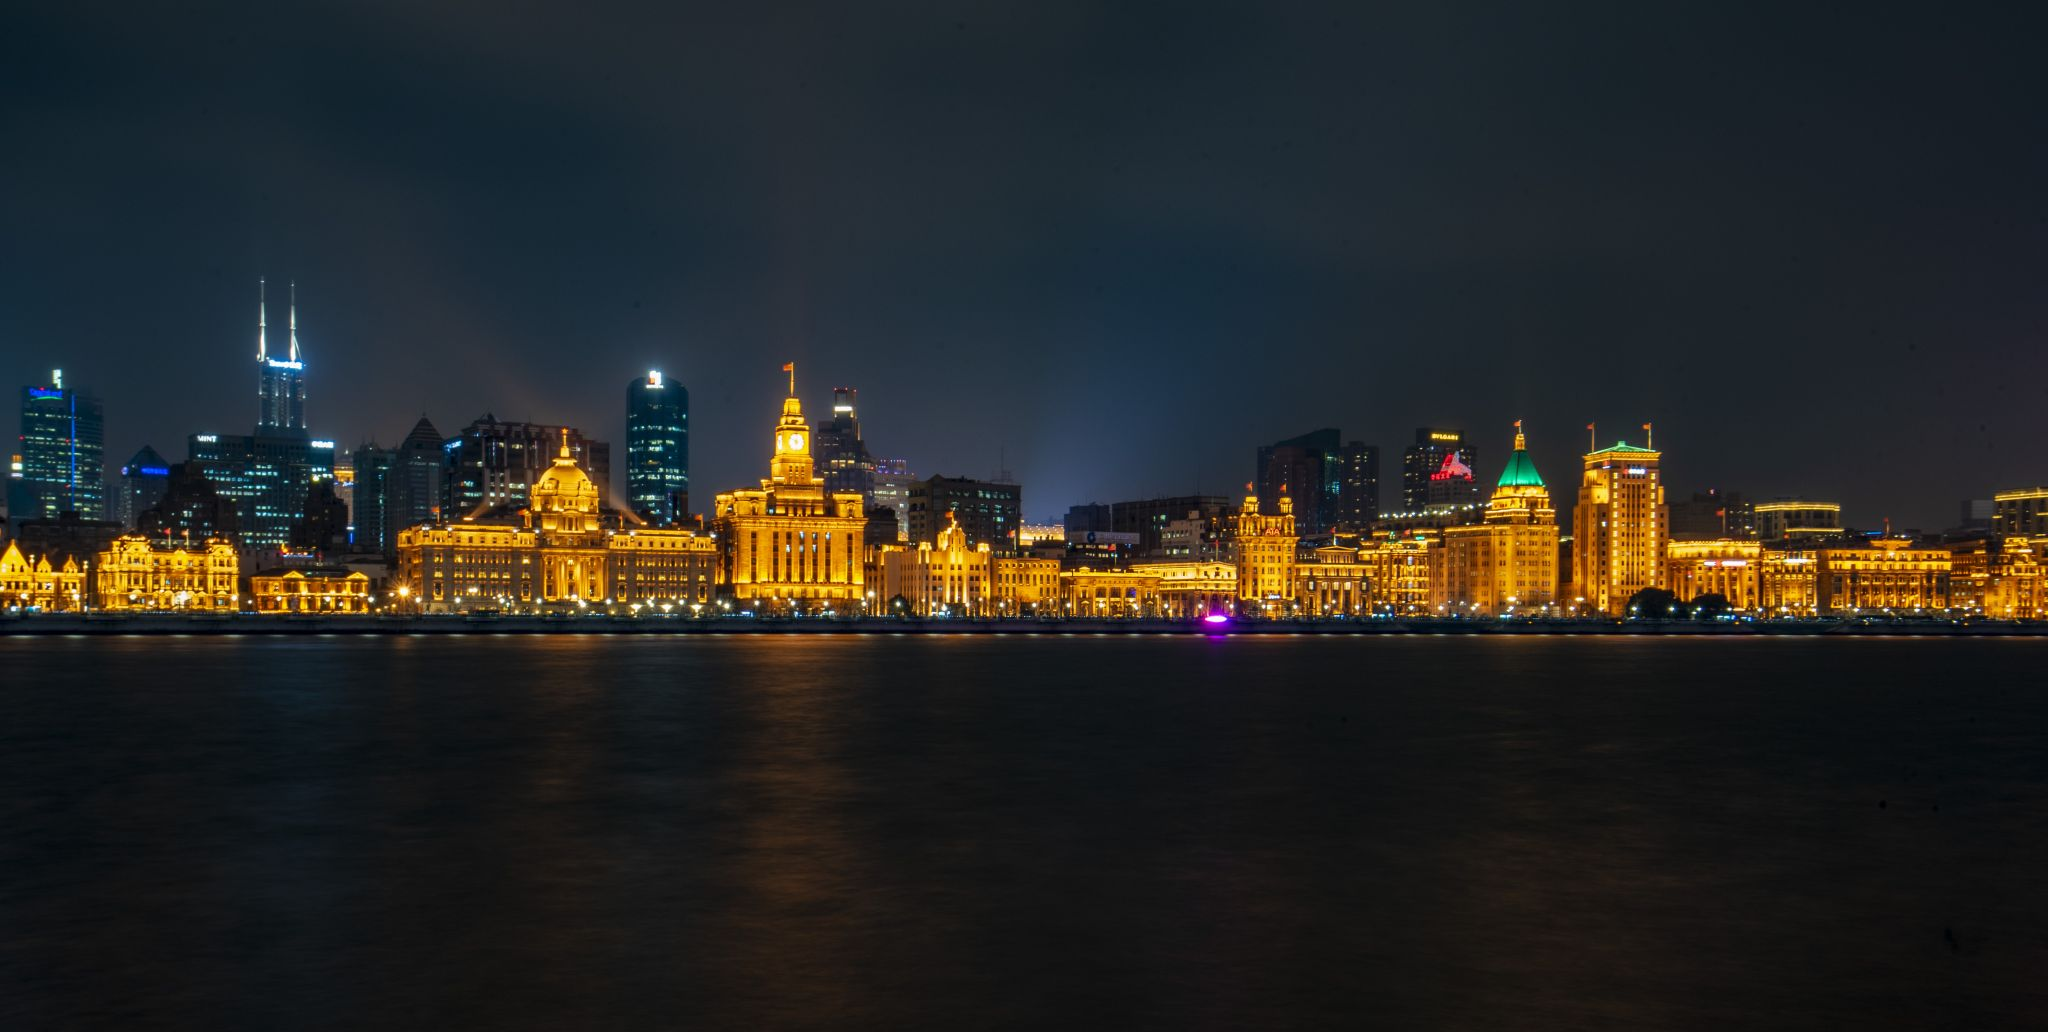 Shanghai - The Other Side of the Bund, China